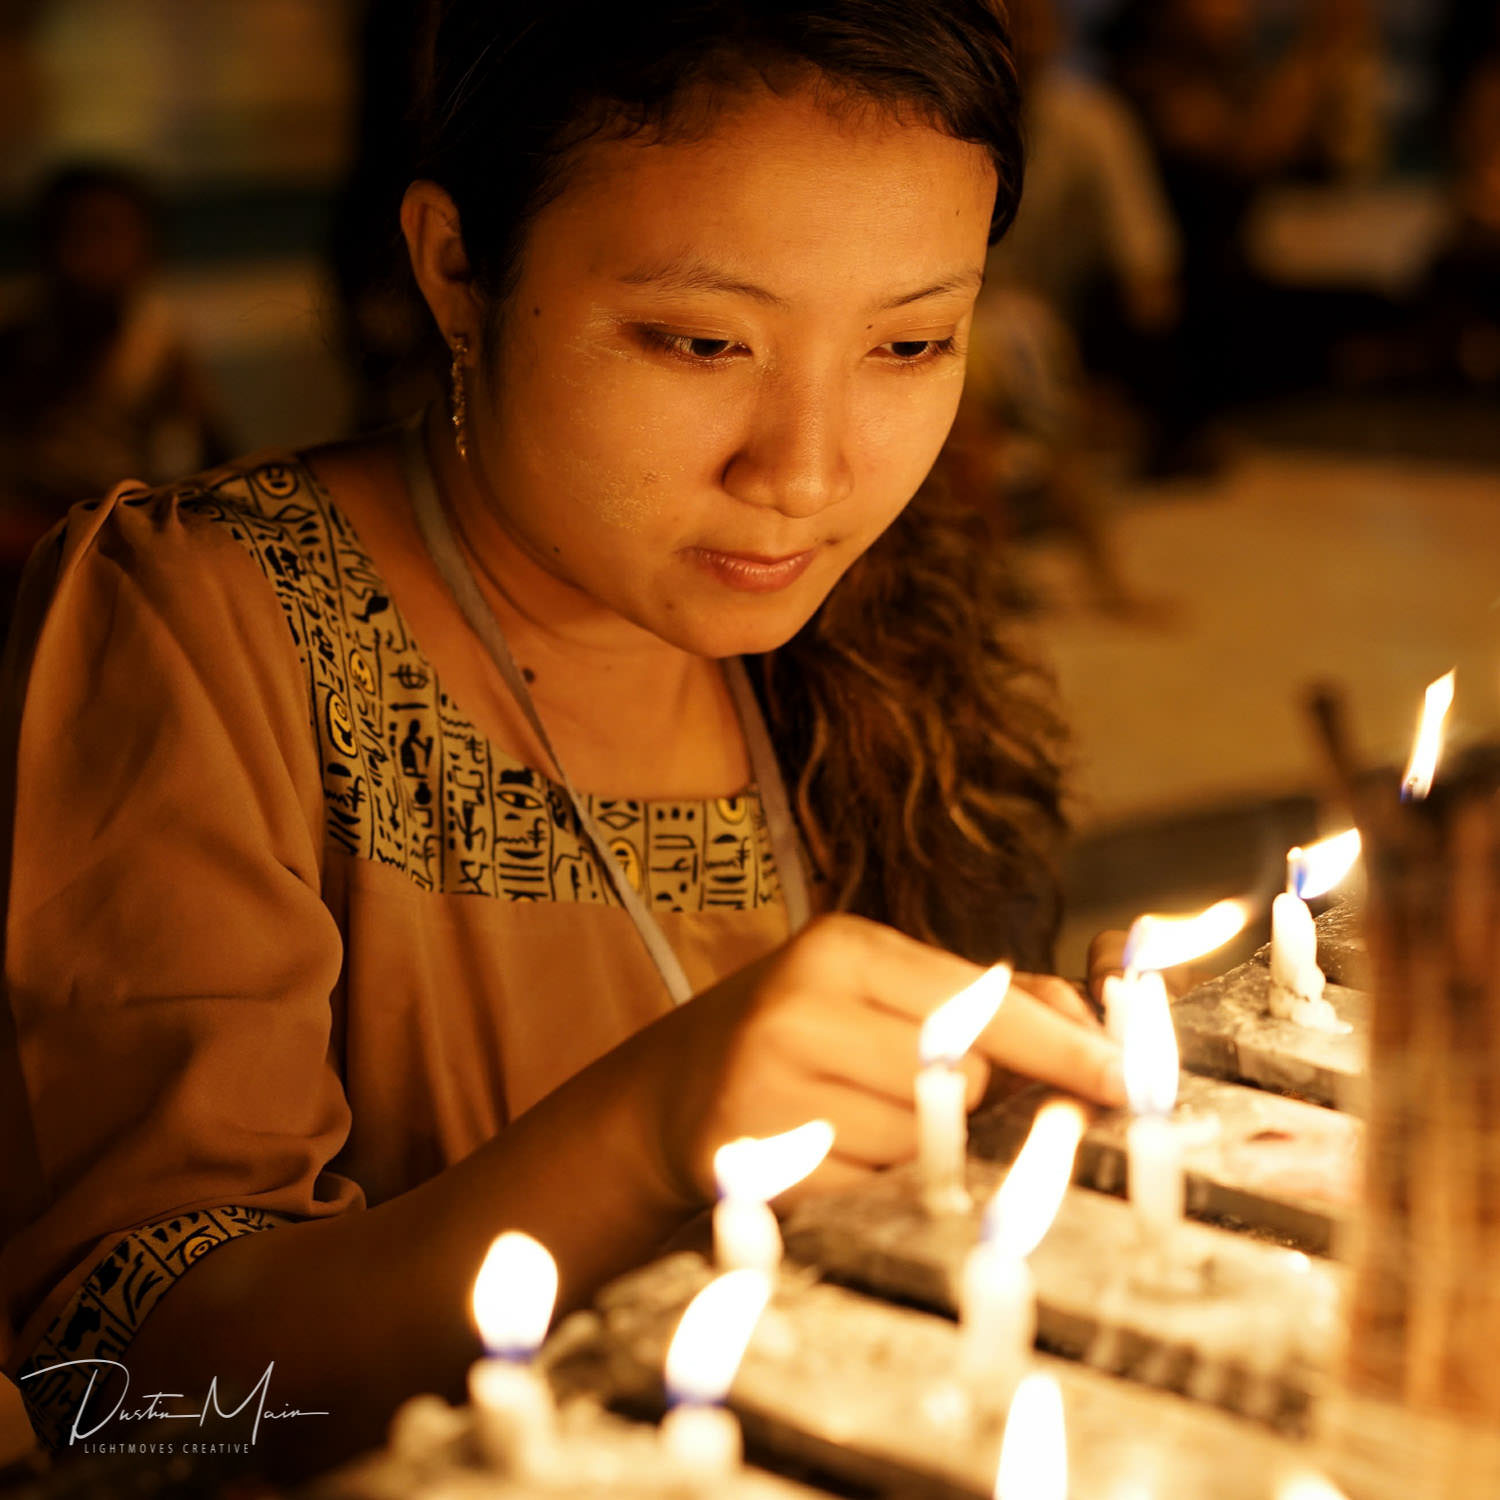 - AyeWith family spread all over the country, Aye has extensive knowledge of Myanmar's traditions.